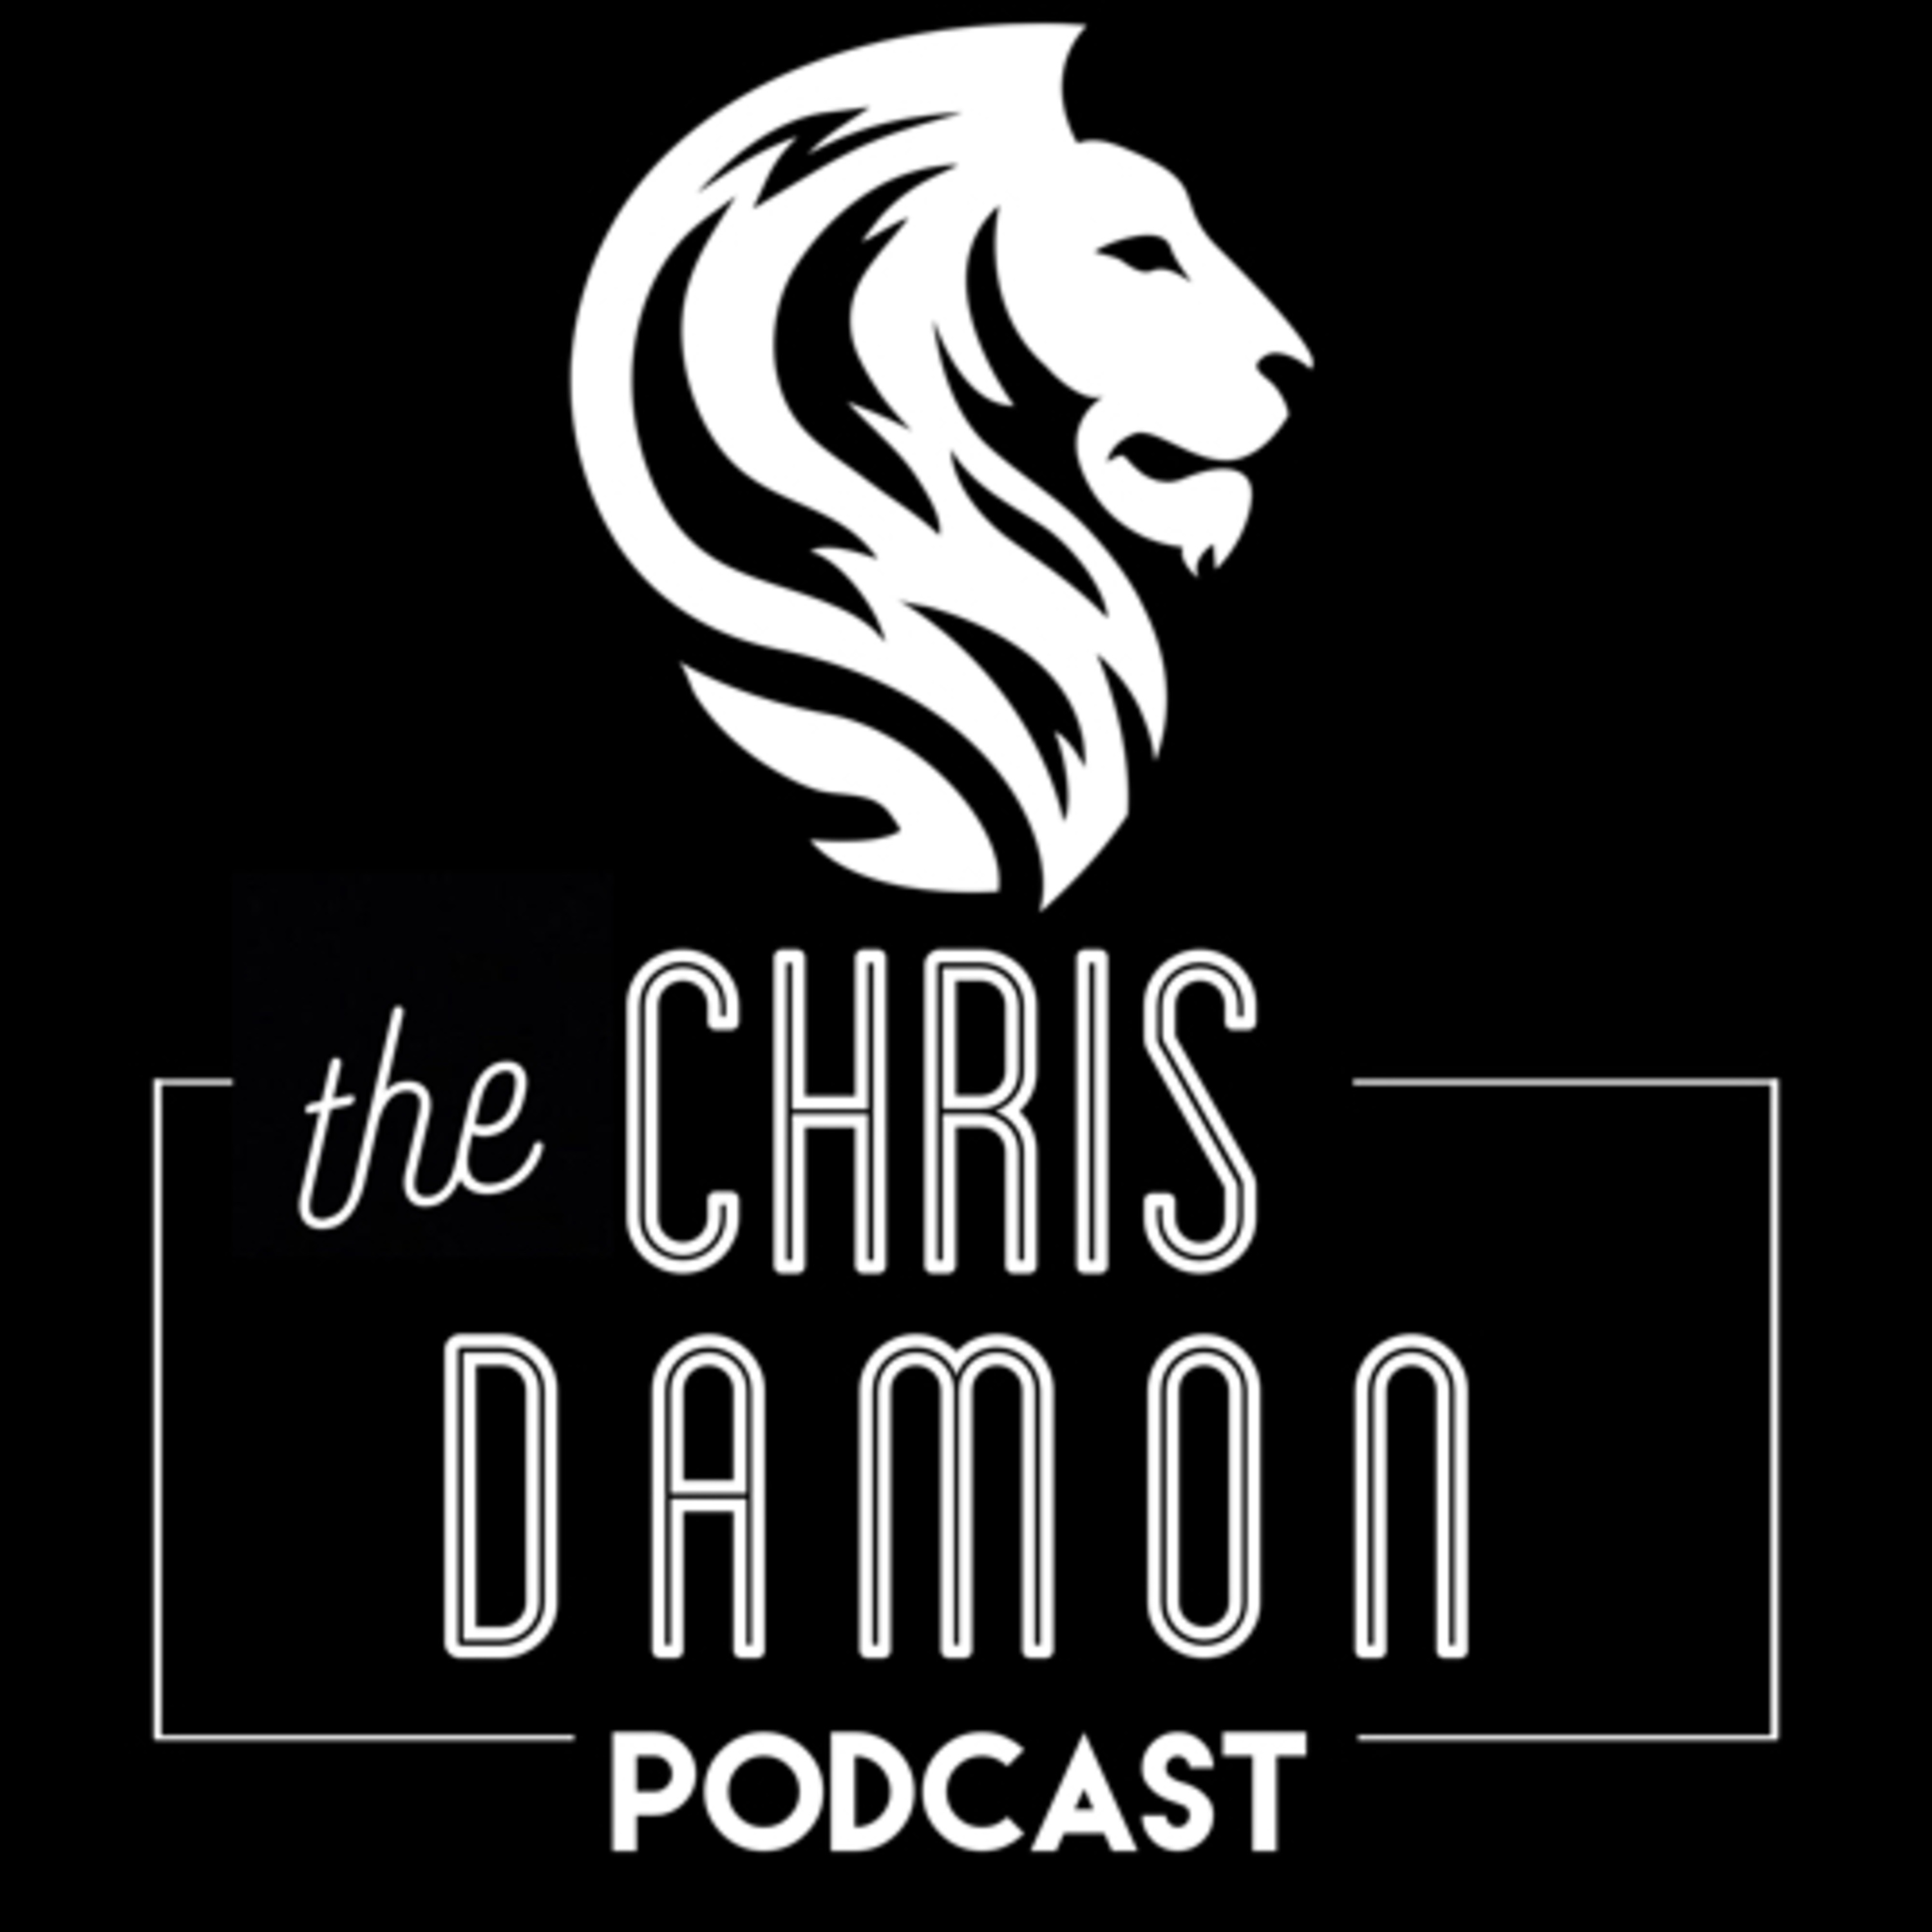 Intro to The Chris Damon Podcast